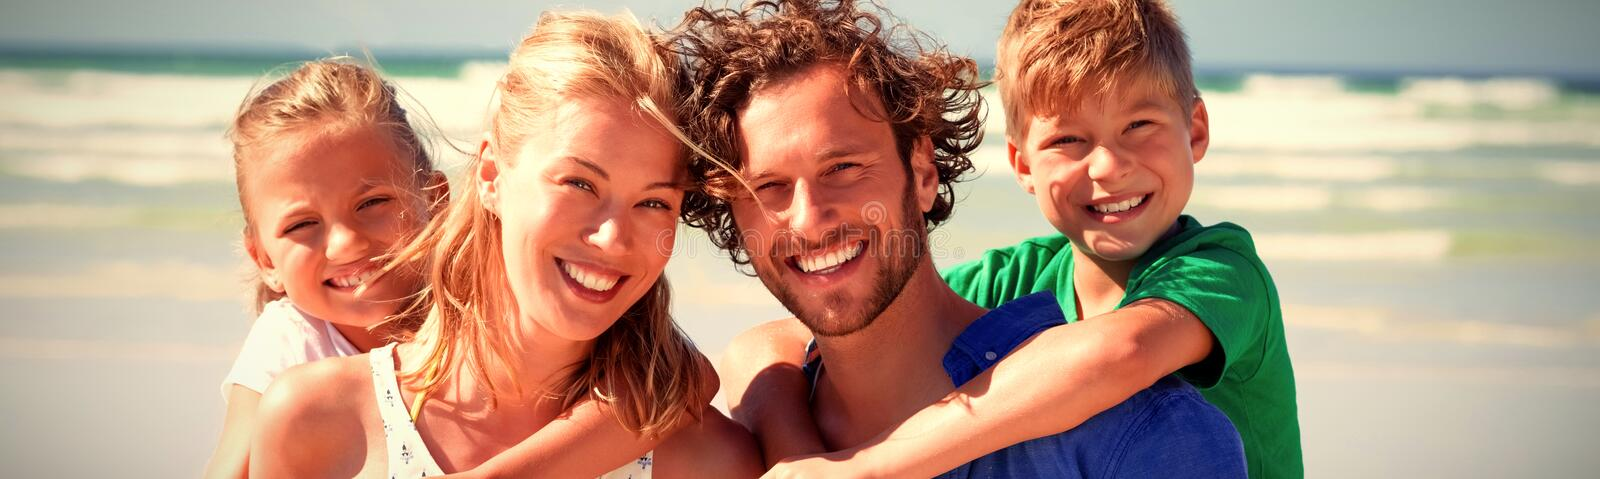 Portrait of happy family piggybacking at beach royalty free stock photography